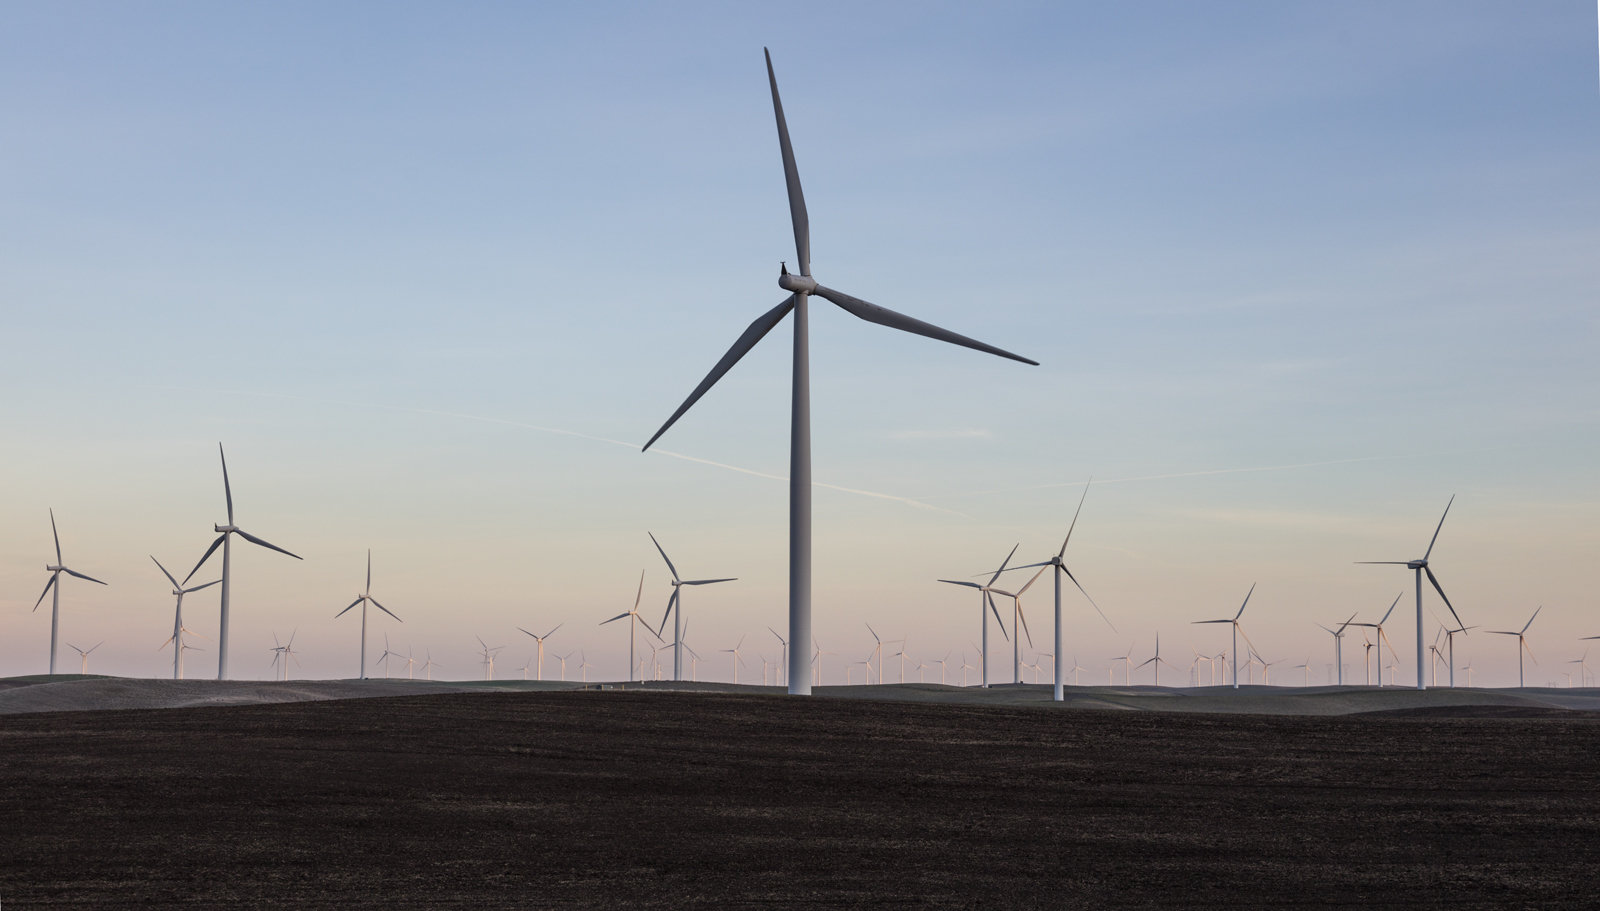 Wind turbines The Delta_#07_©Henrik Kam 2015